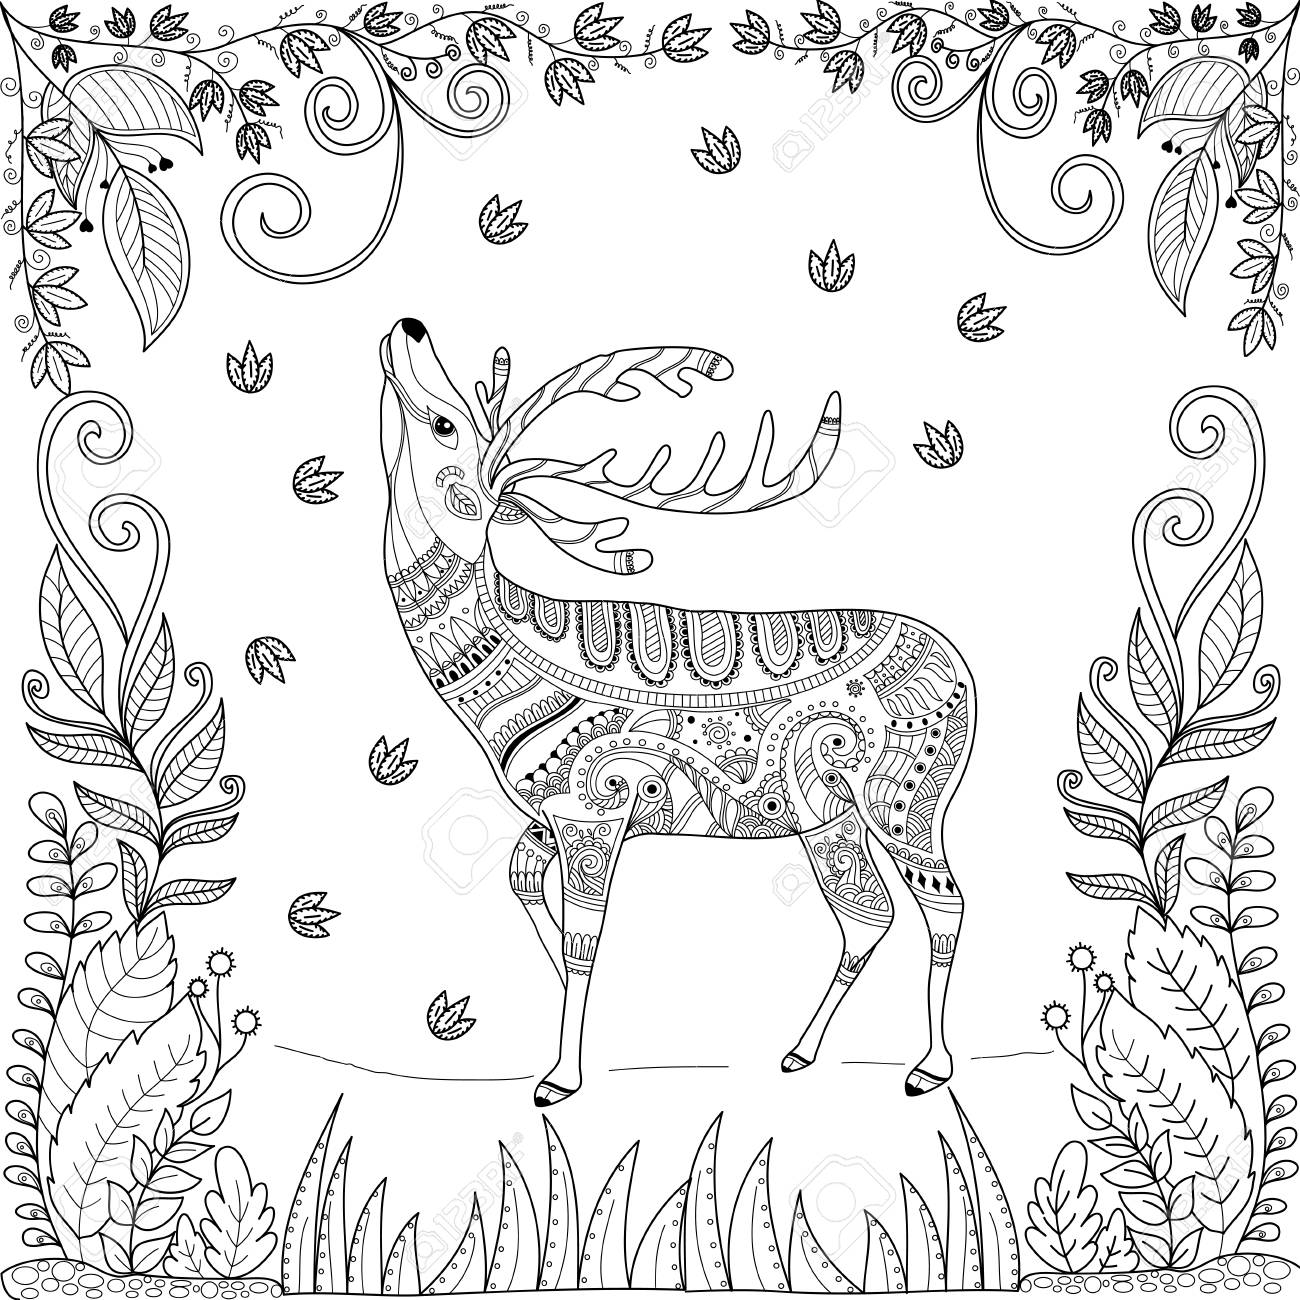 Coloring book page of deer in jungle for adult.stlyized.vector..